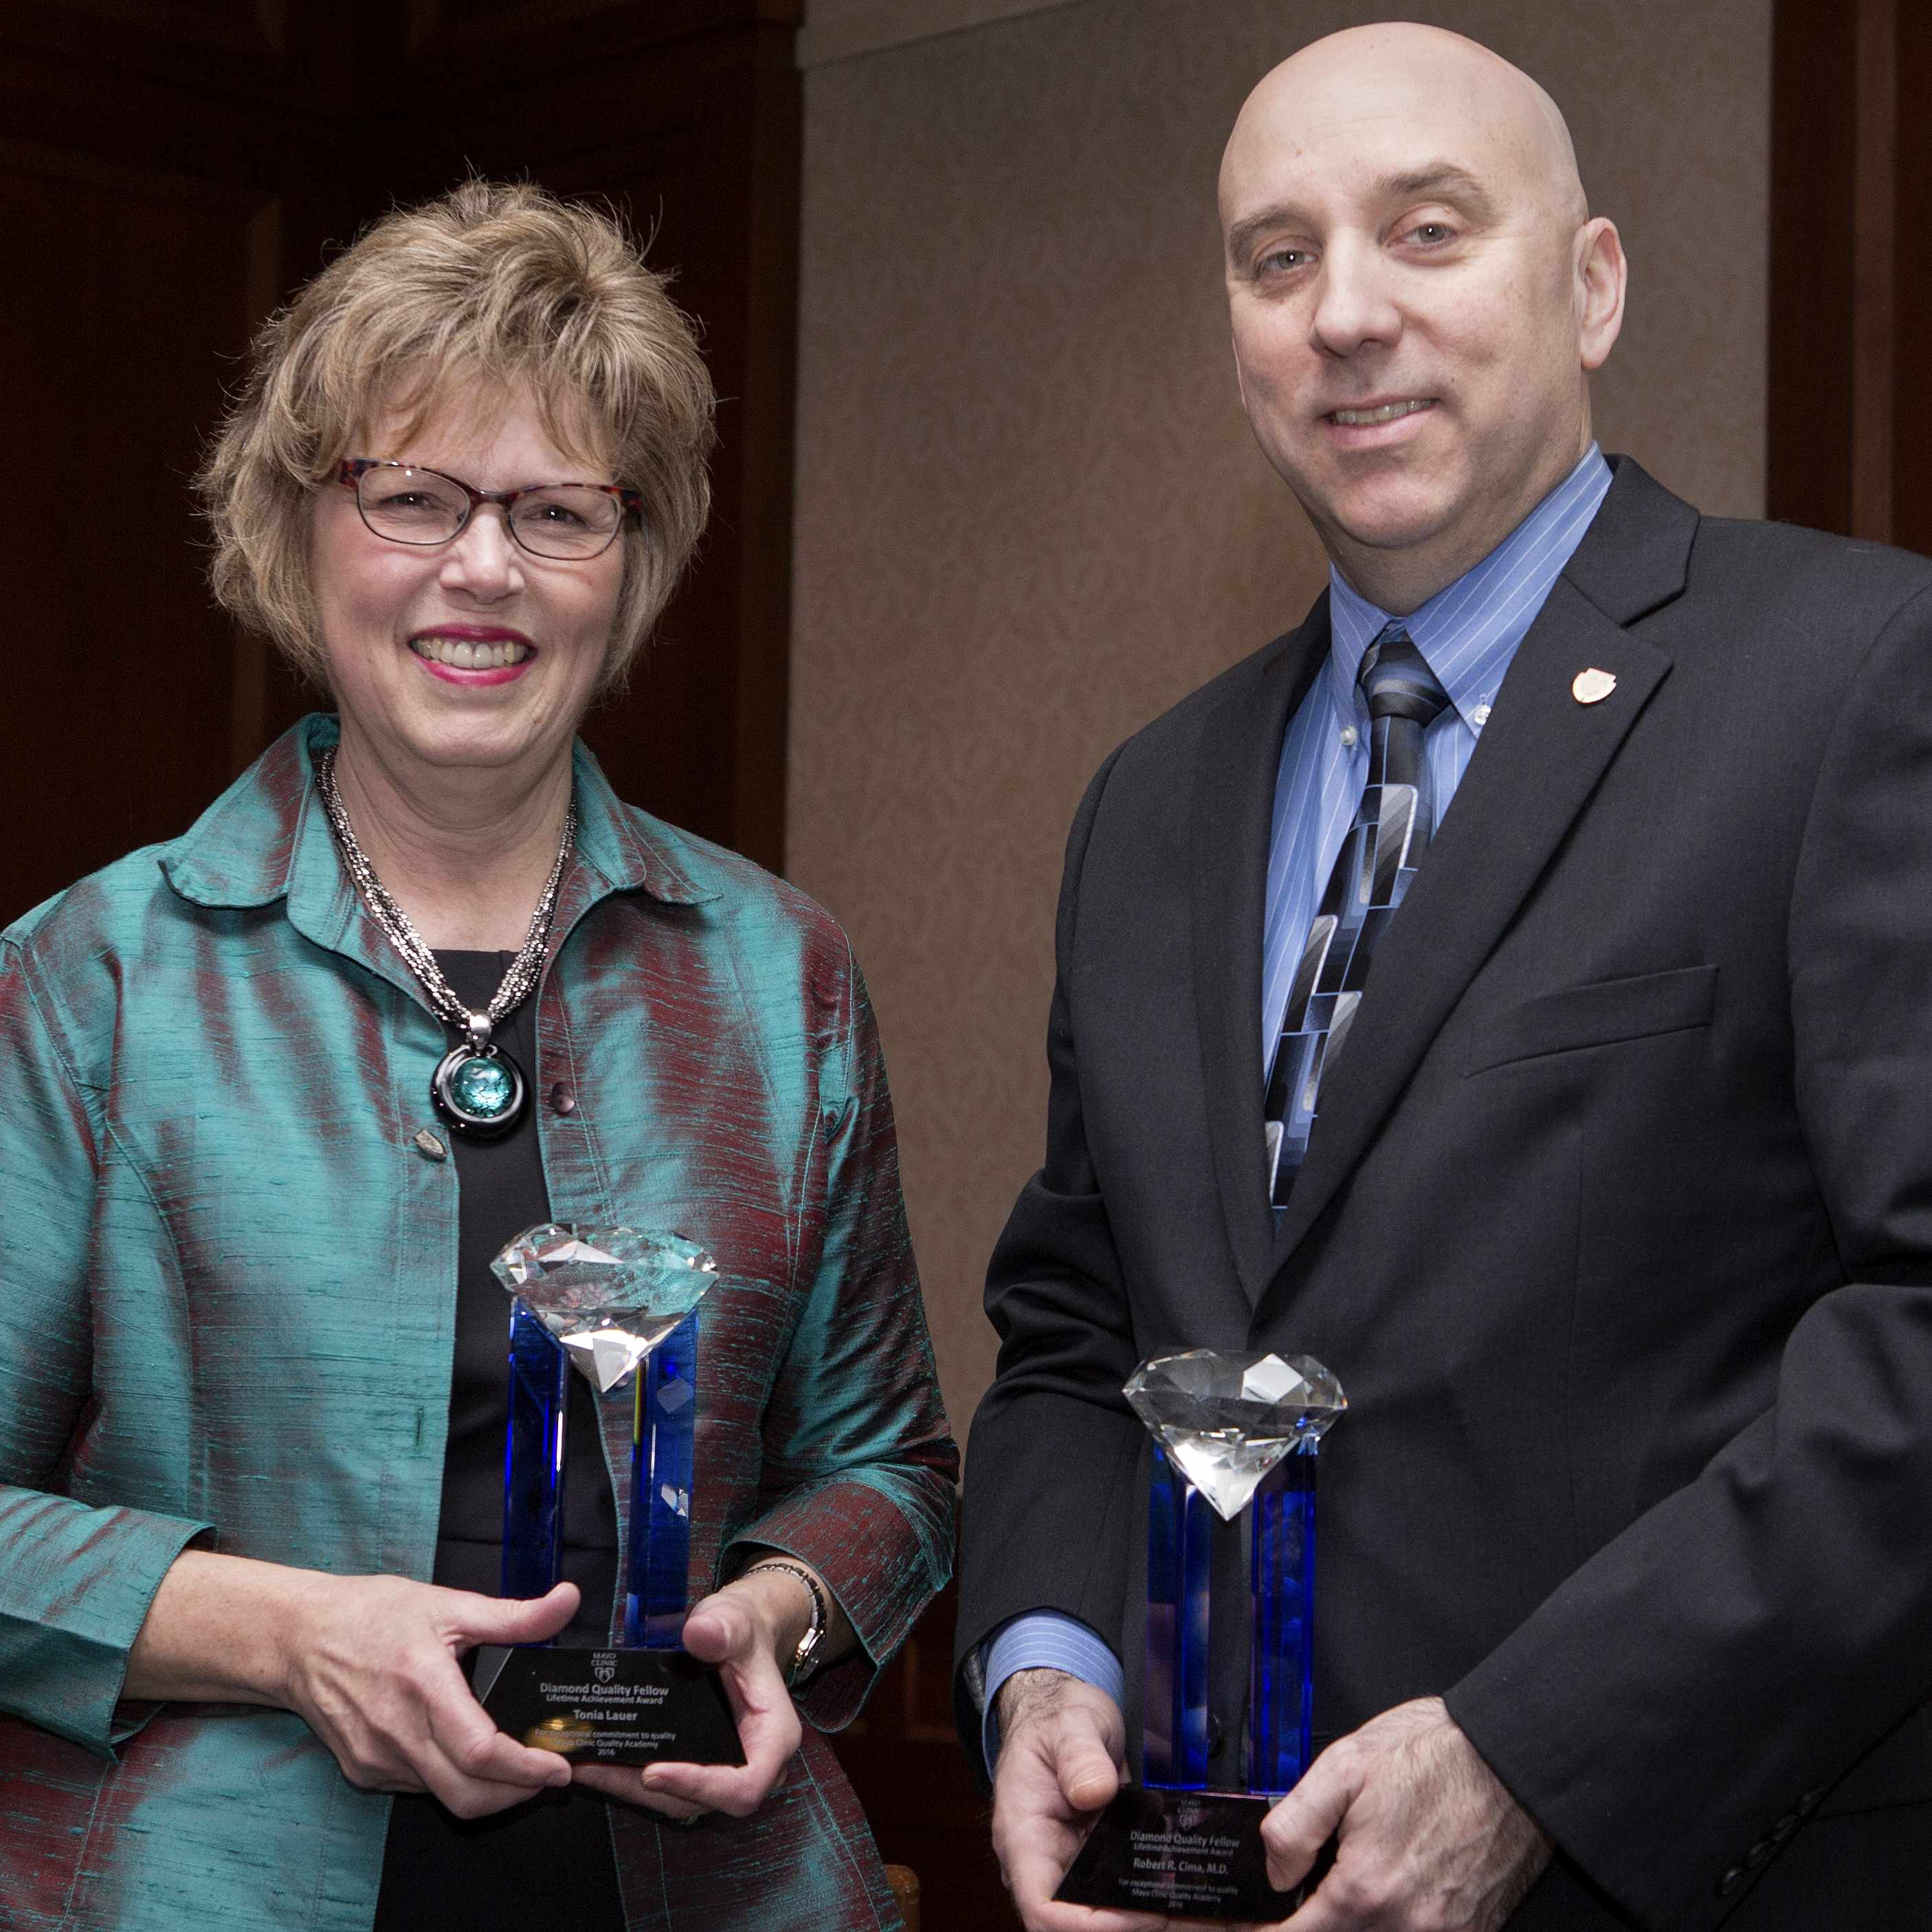 Diamond Quality Award Winners Tonia Lauer and Dr. Robert Cima